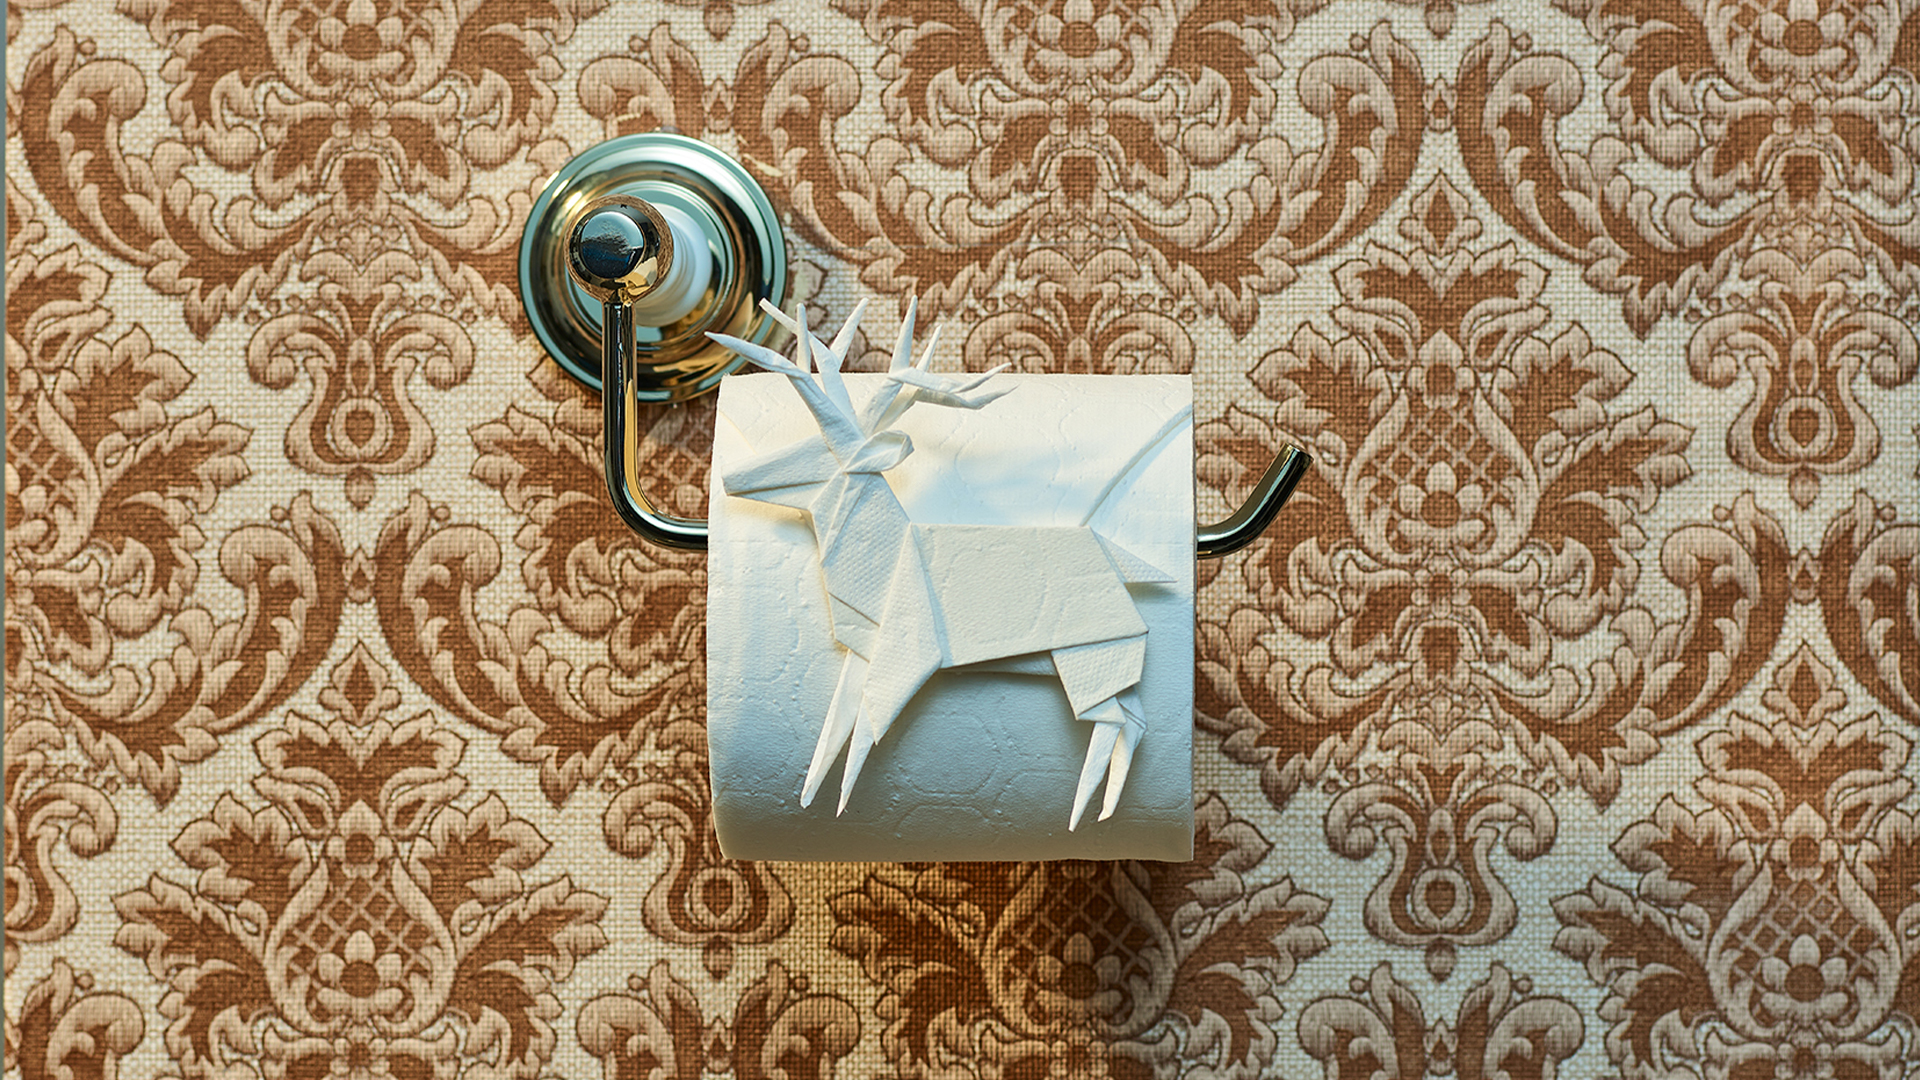 M&C Saatchi: agency gives festive wishes in loo roll